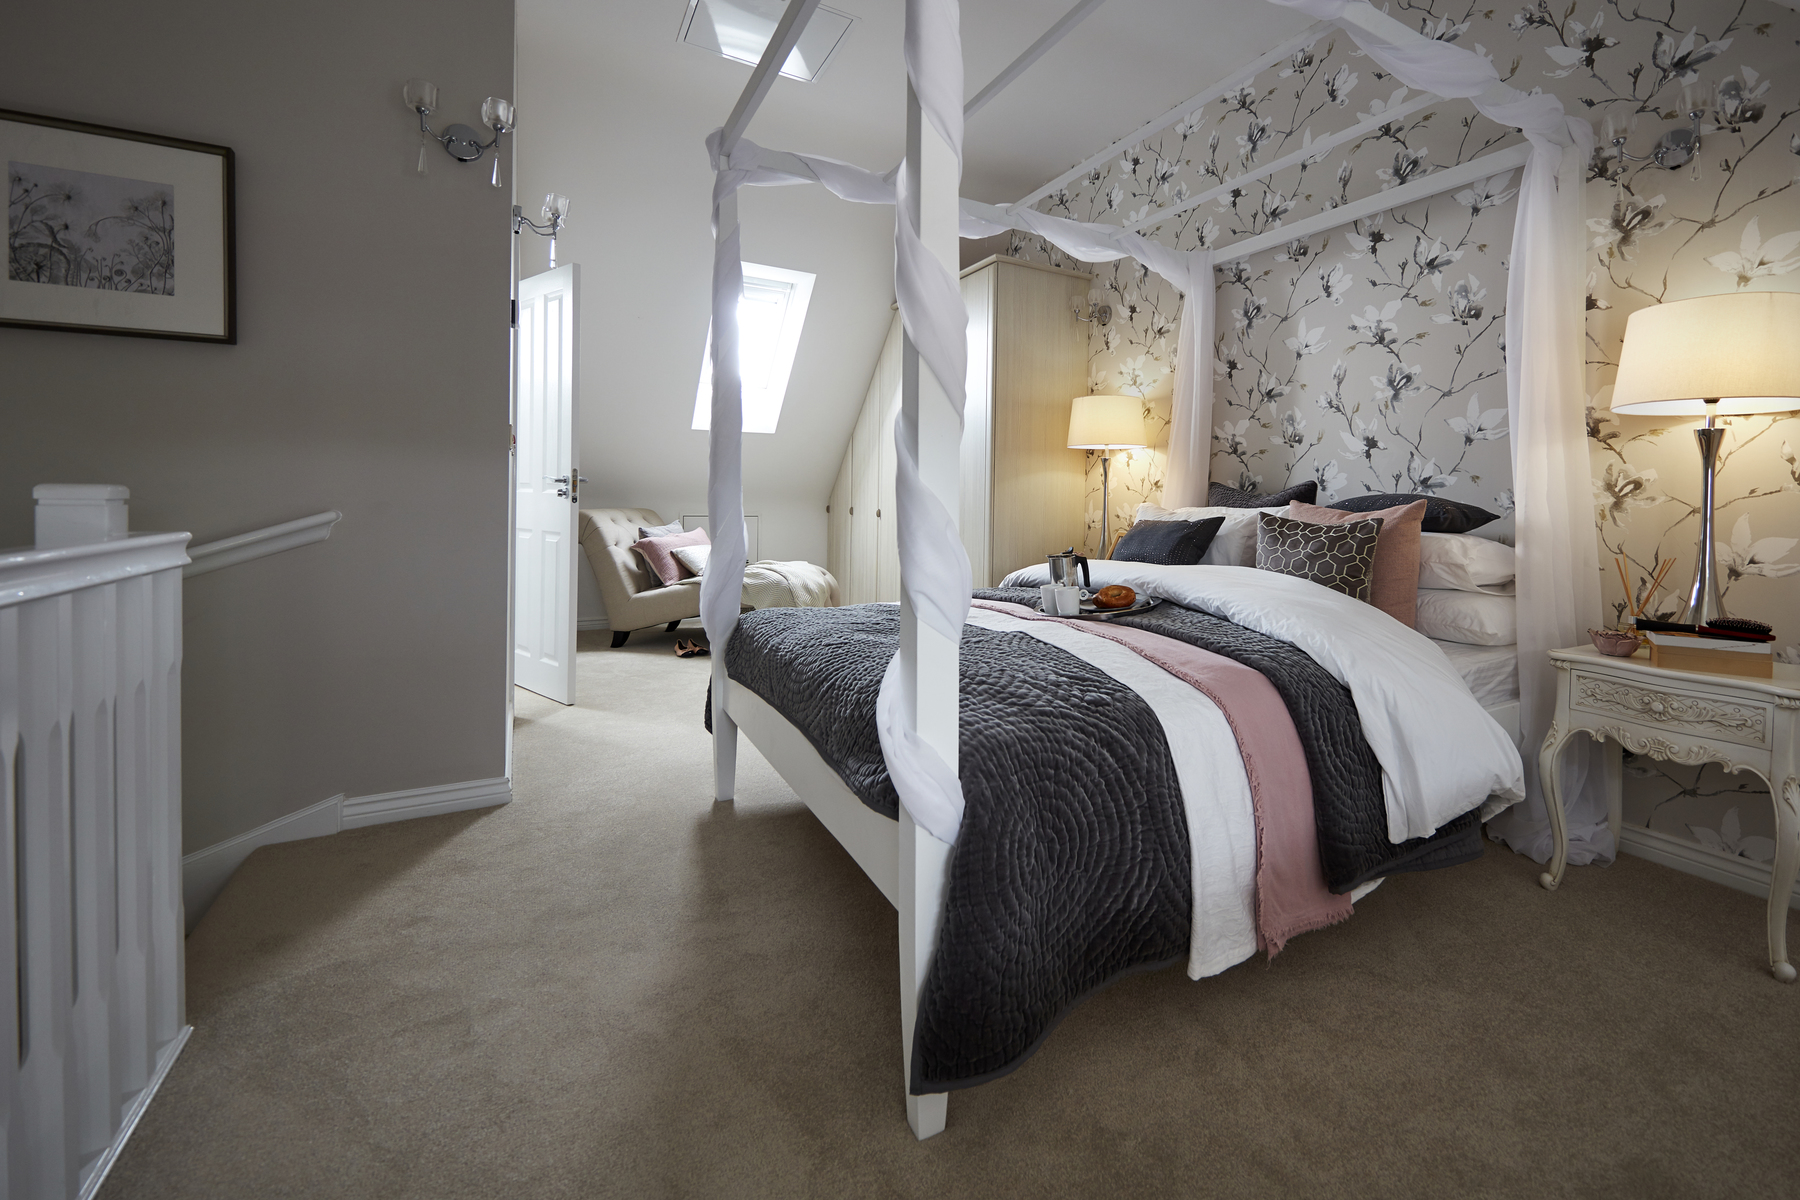 TW Mids_Lilley Meadow_Southam_PB35 G_Alton G_Master bedroom2